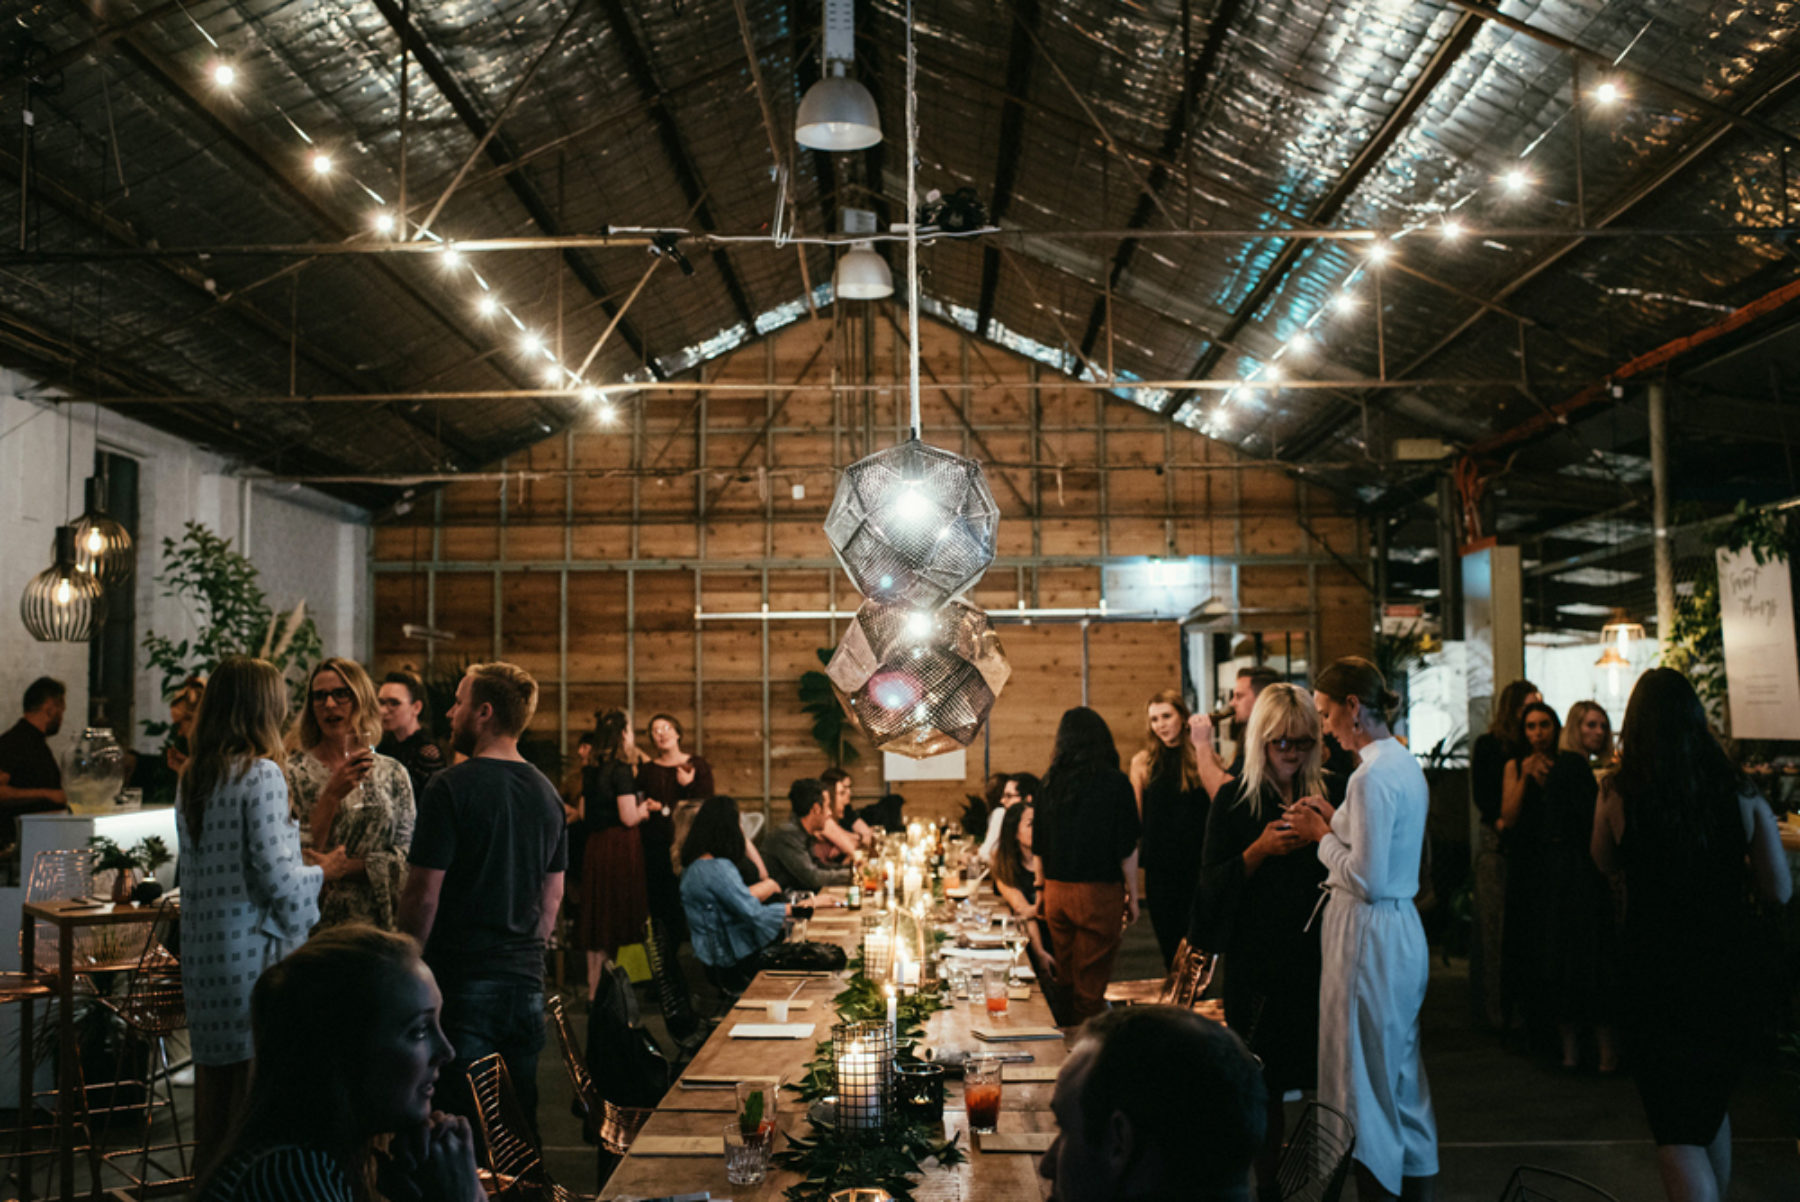 A modern barn turns into an event venue when lighting and table settings are aded